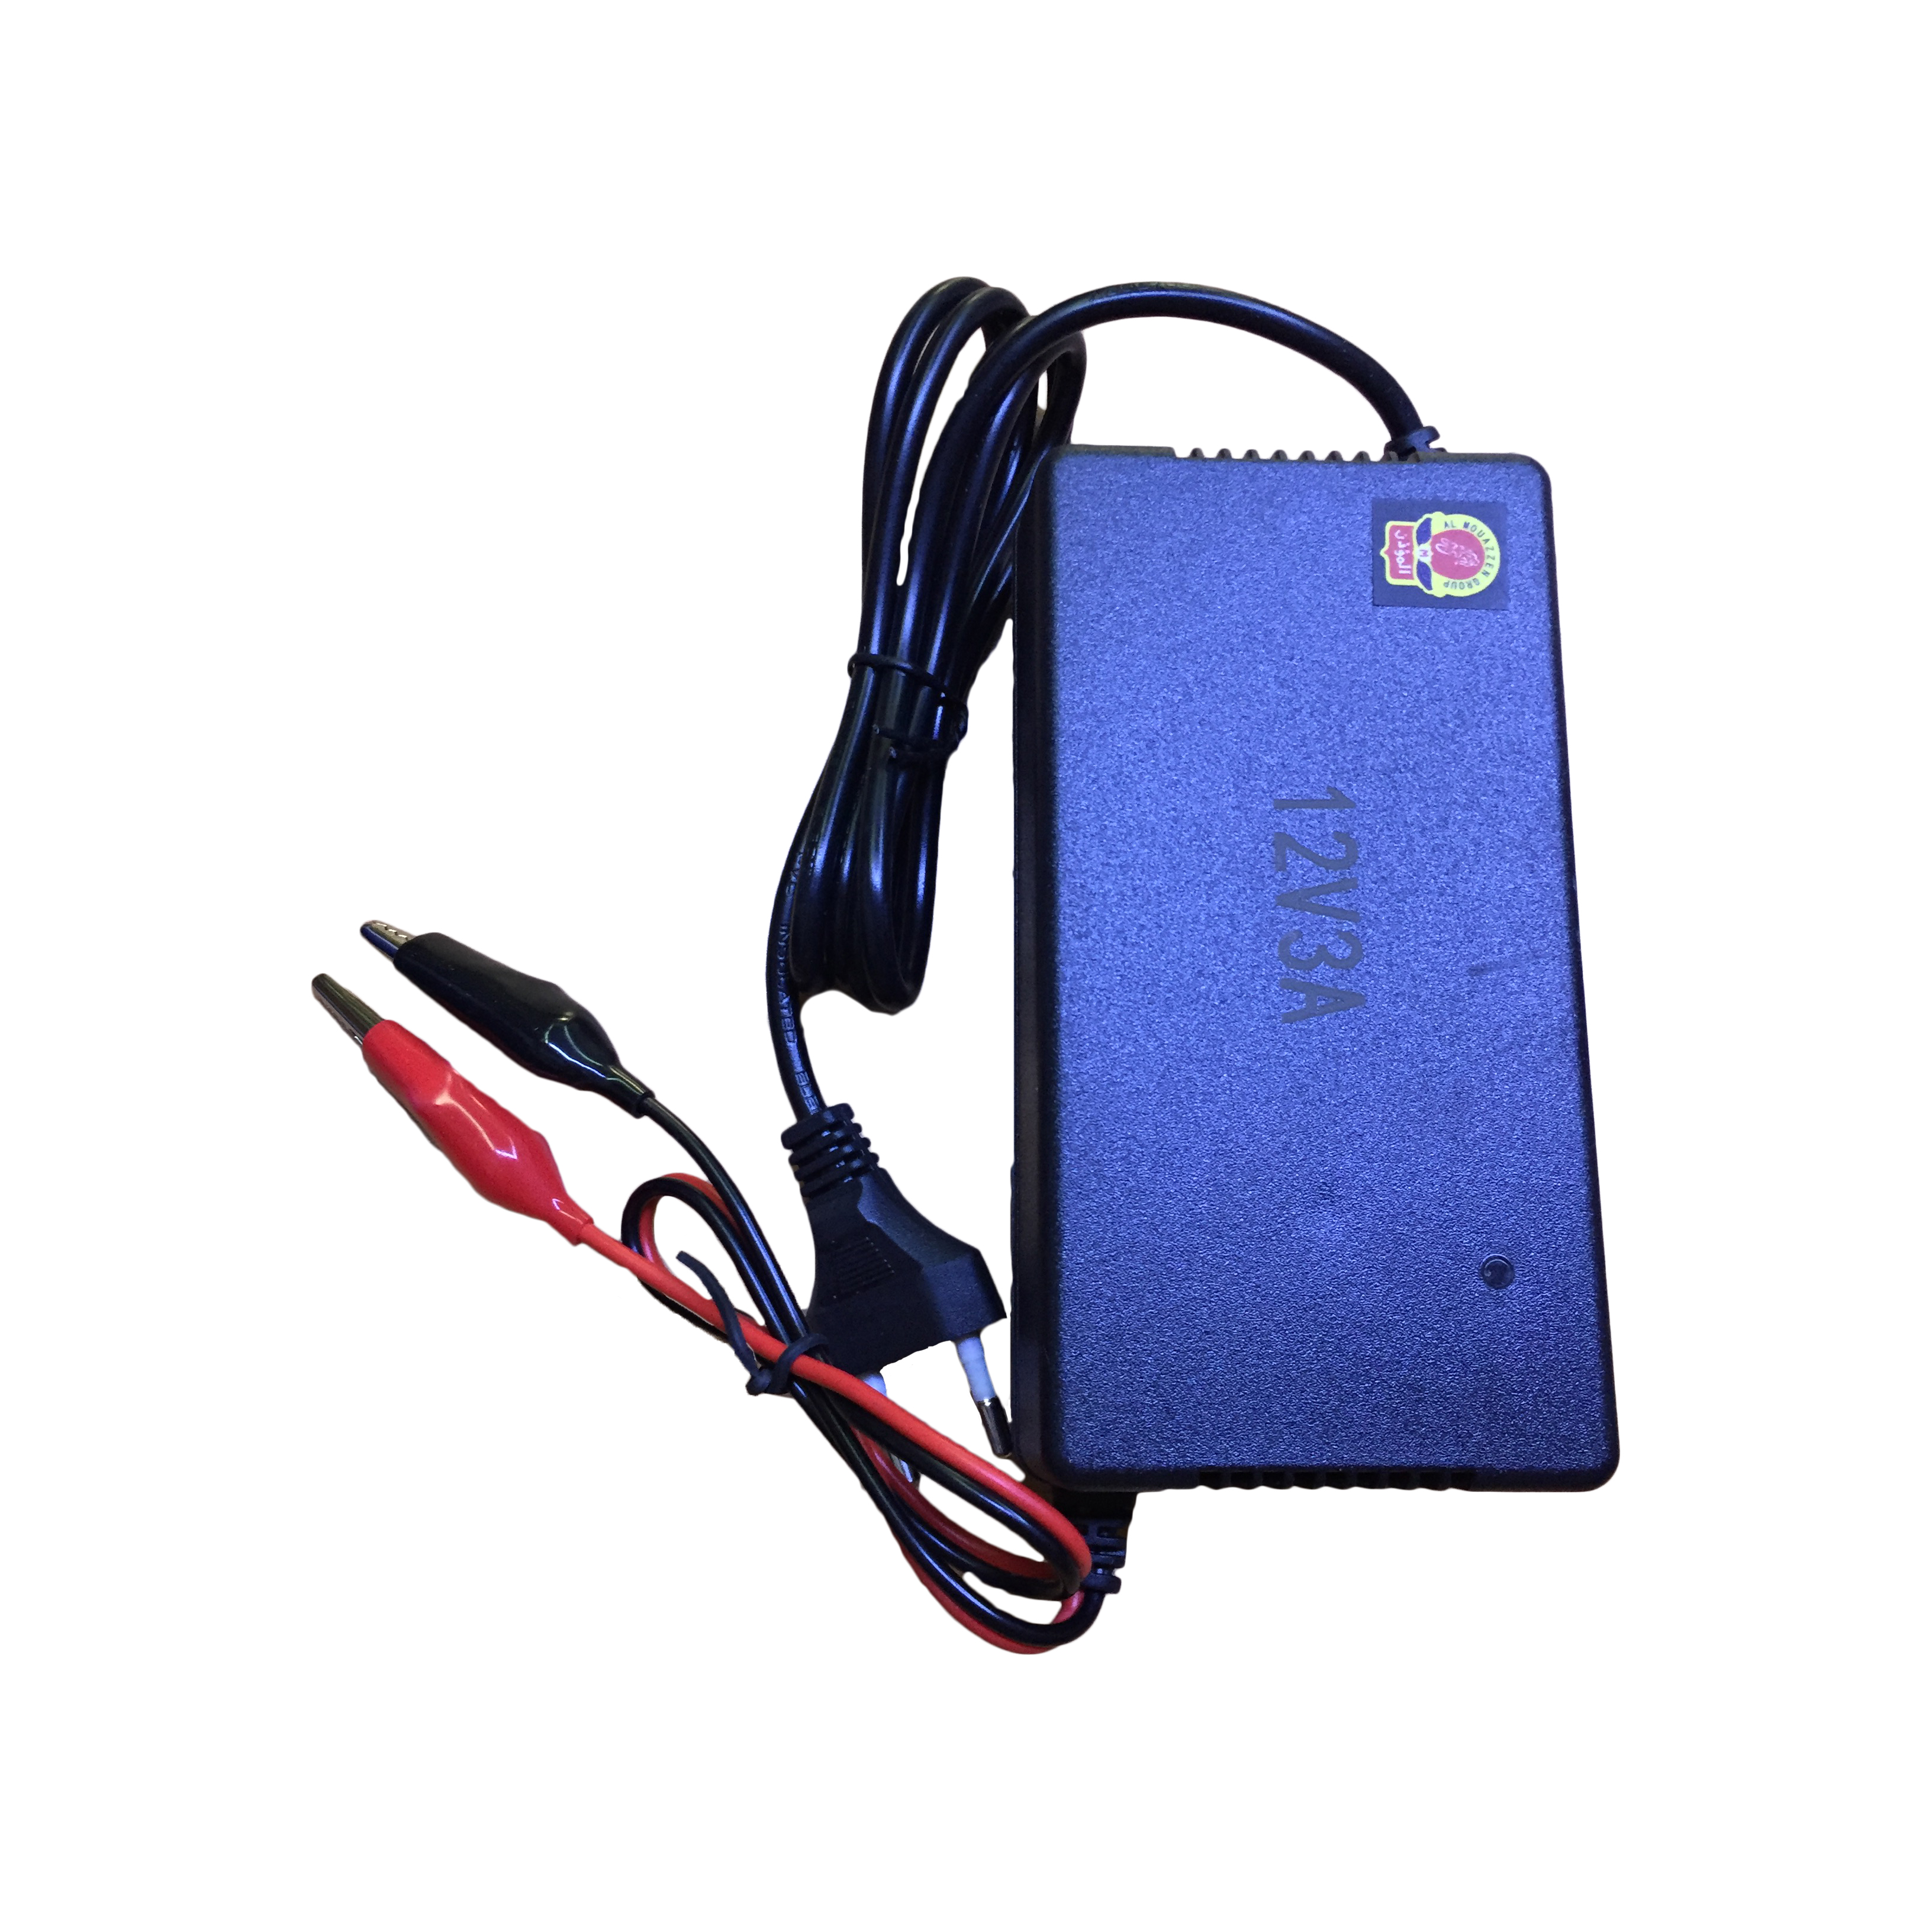 CHARGER UNIQA FOR UPS BATTERY 12V & 3A  SON-1203 شاحن المؤذن ,Battery Charger